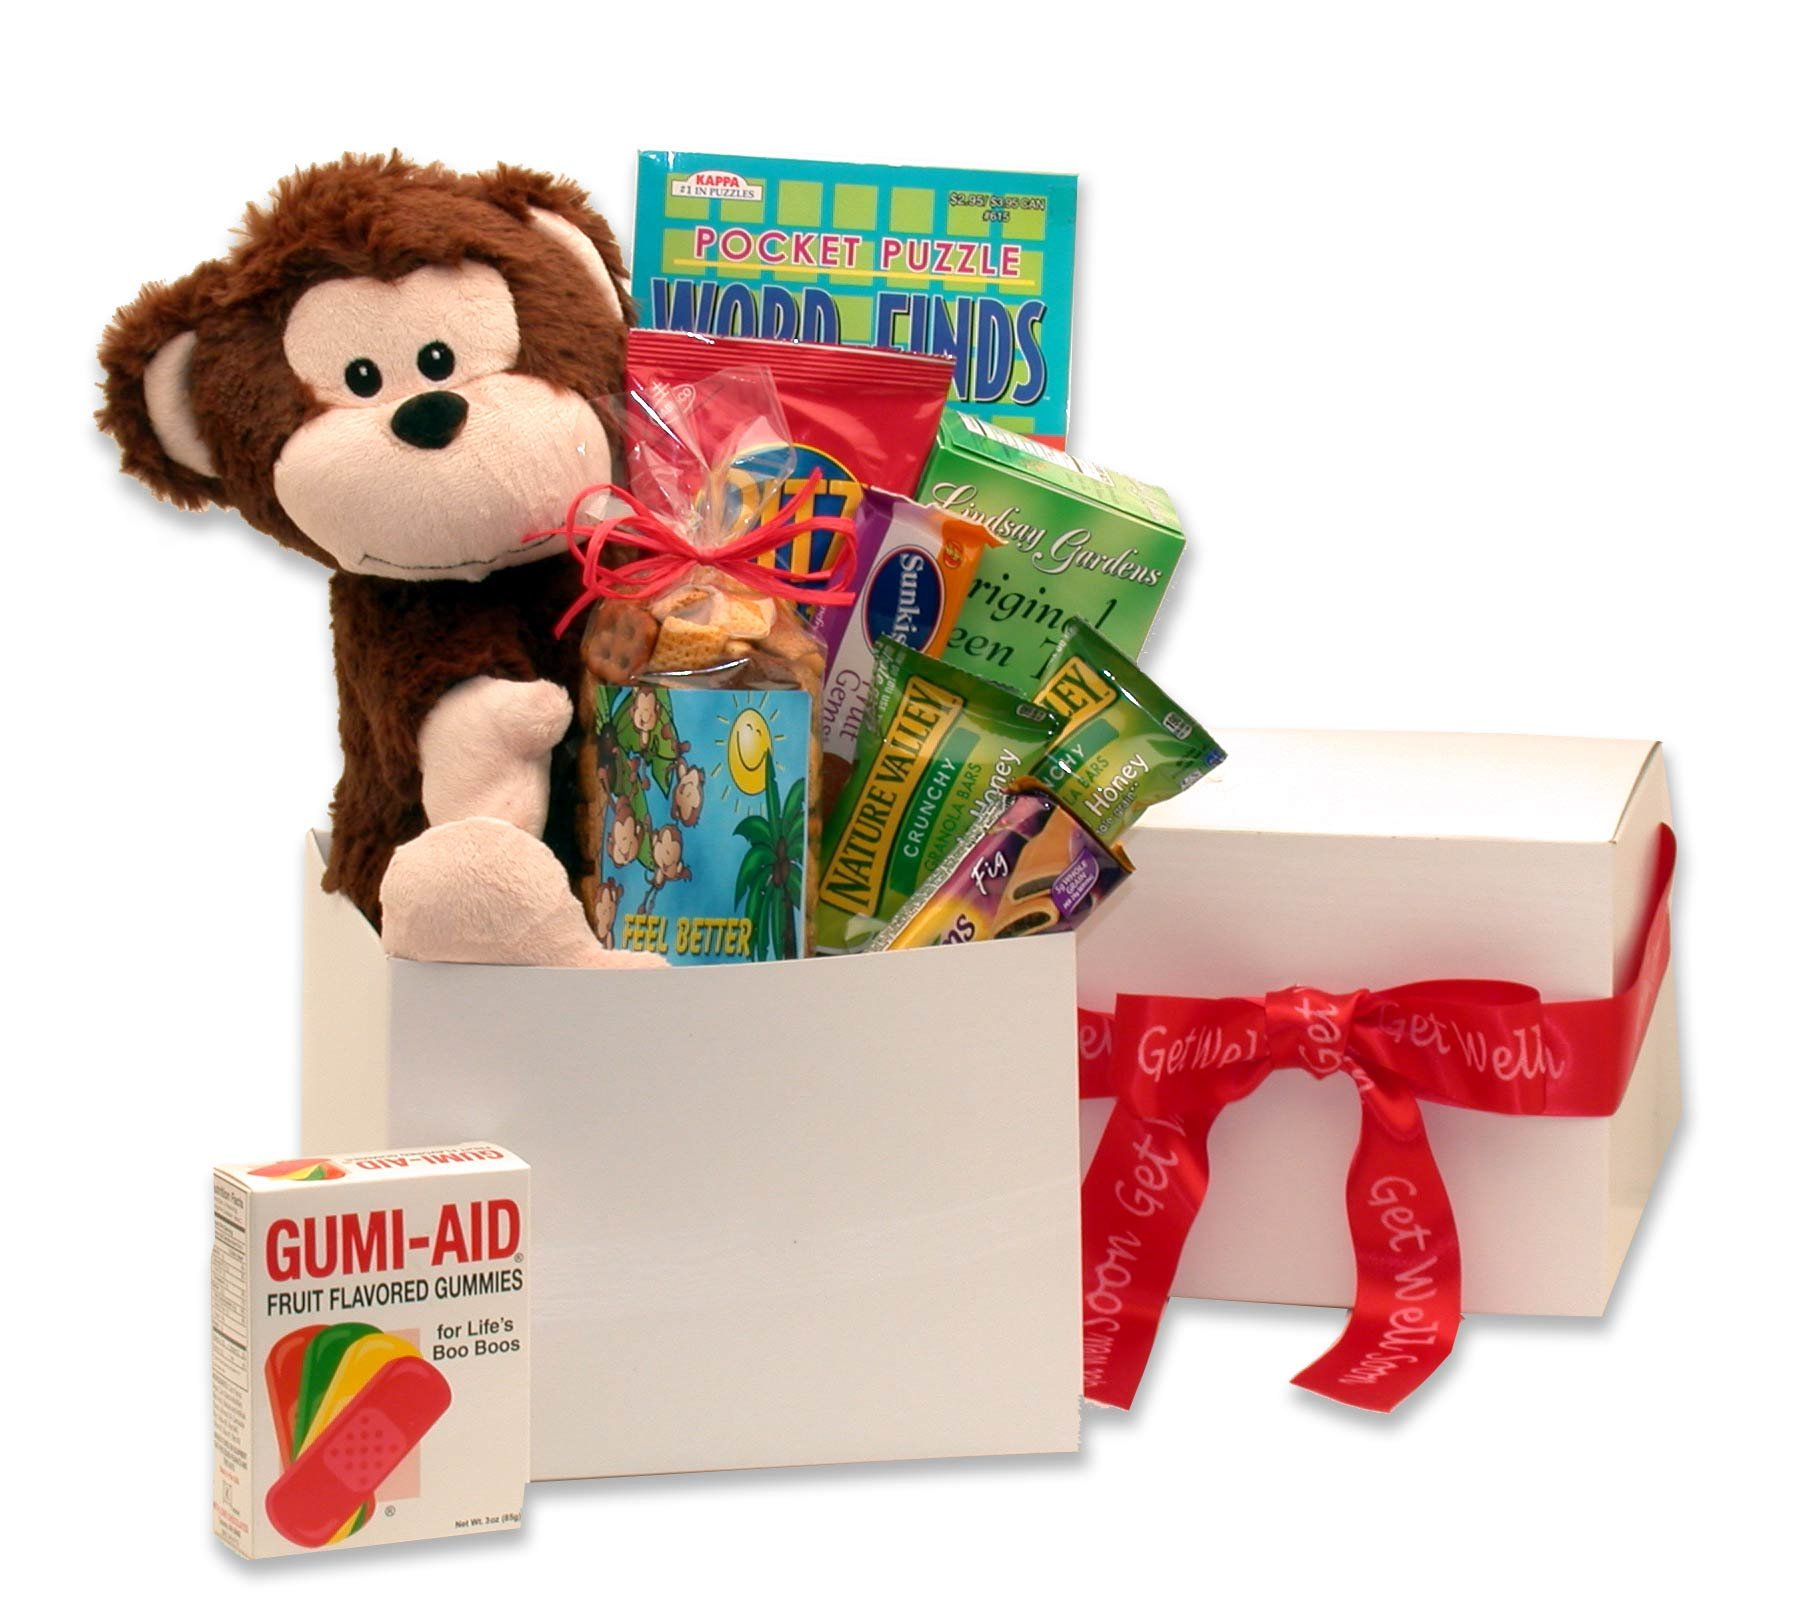 Hang In There and Get Well Care Package